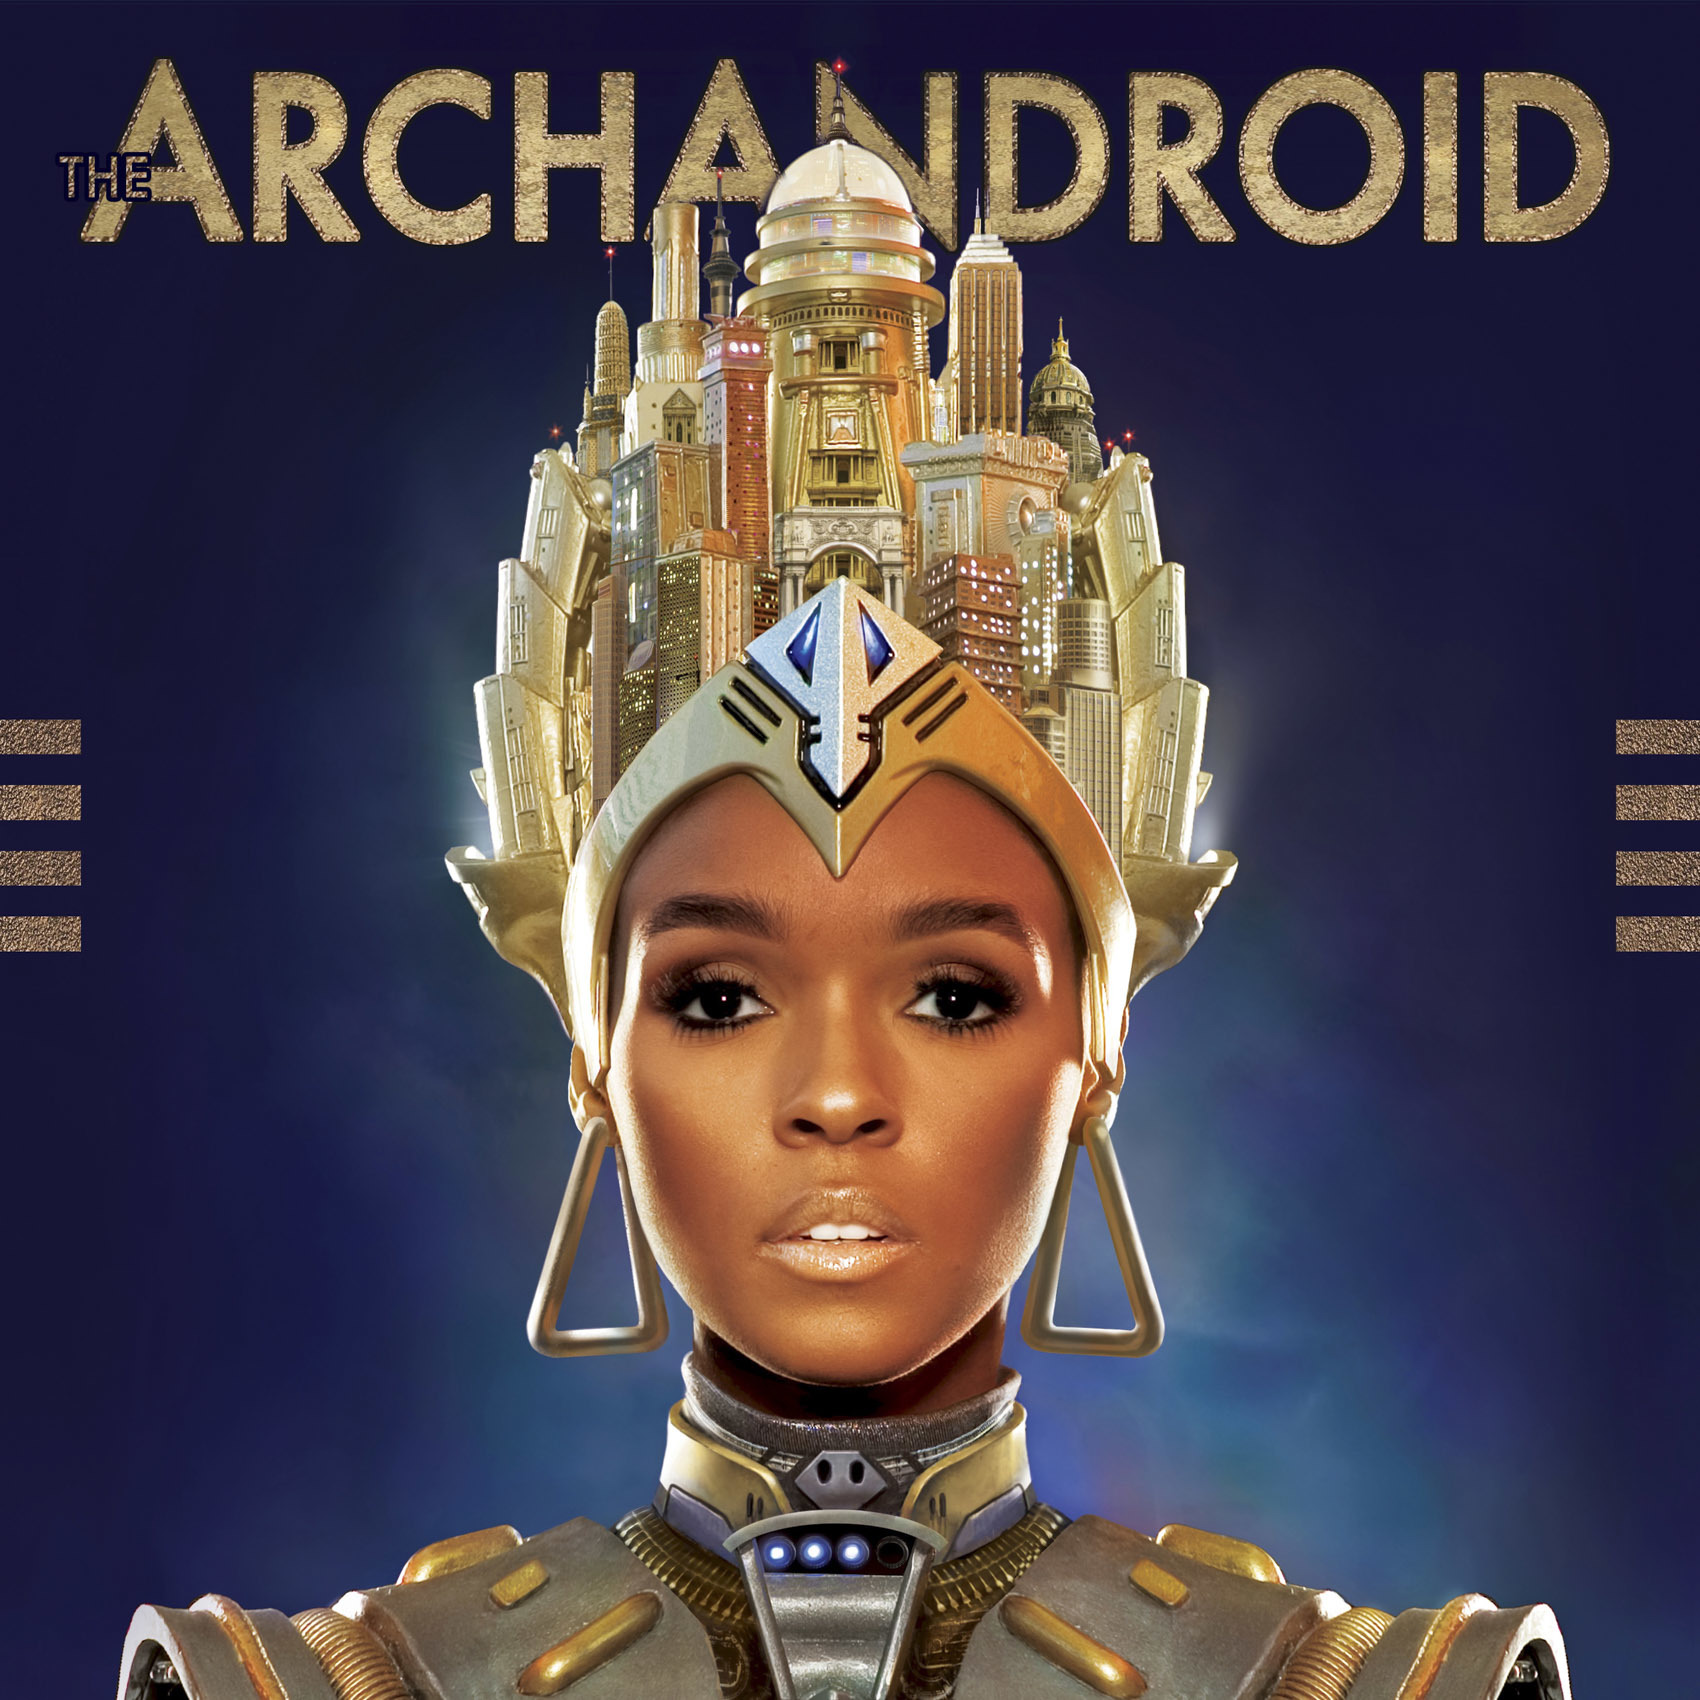 ZAEH_MONAE_ARCHANDROID_COVER